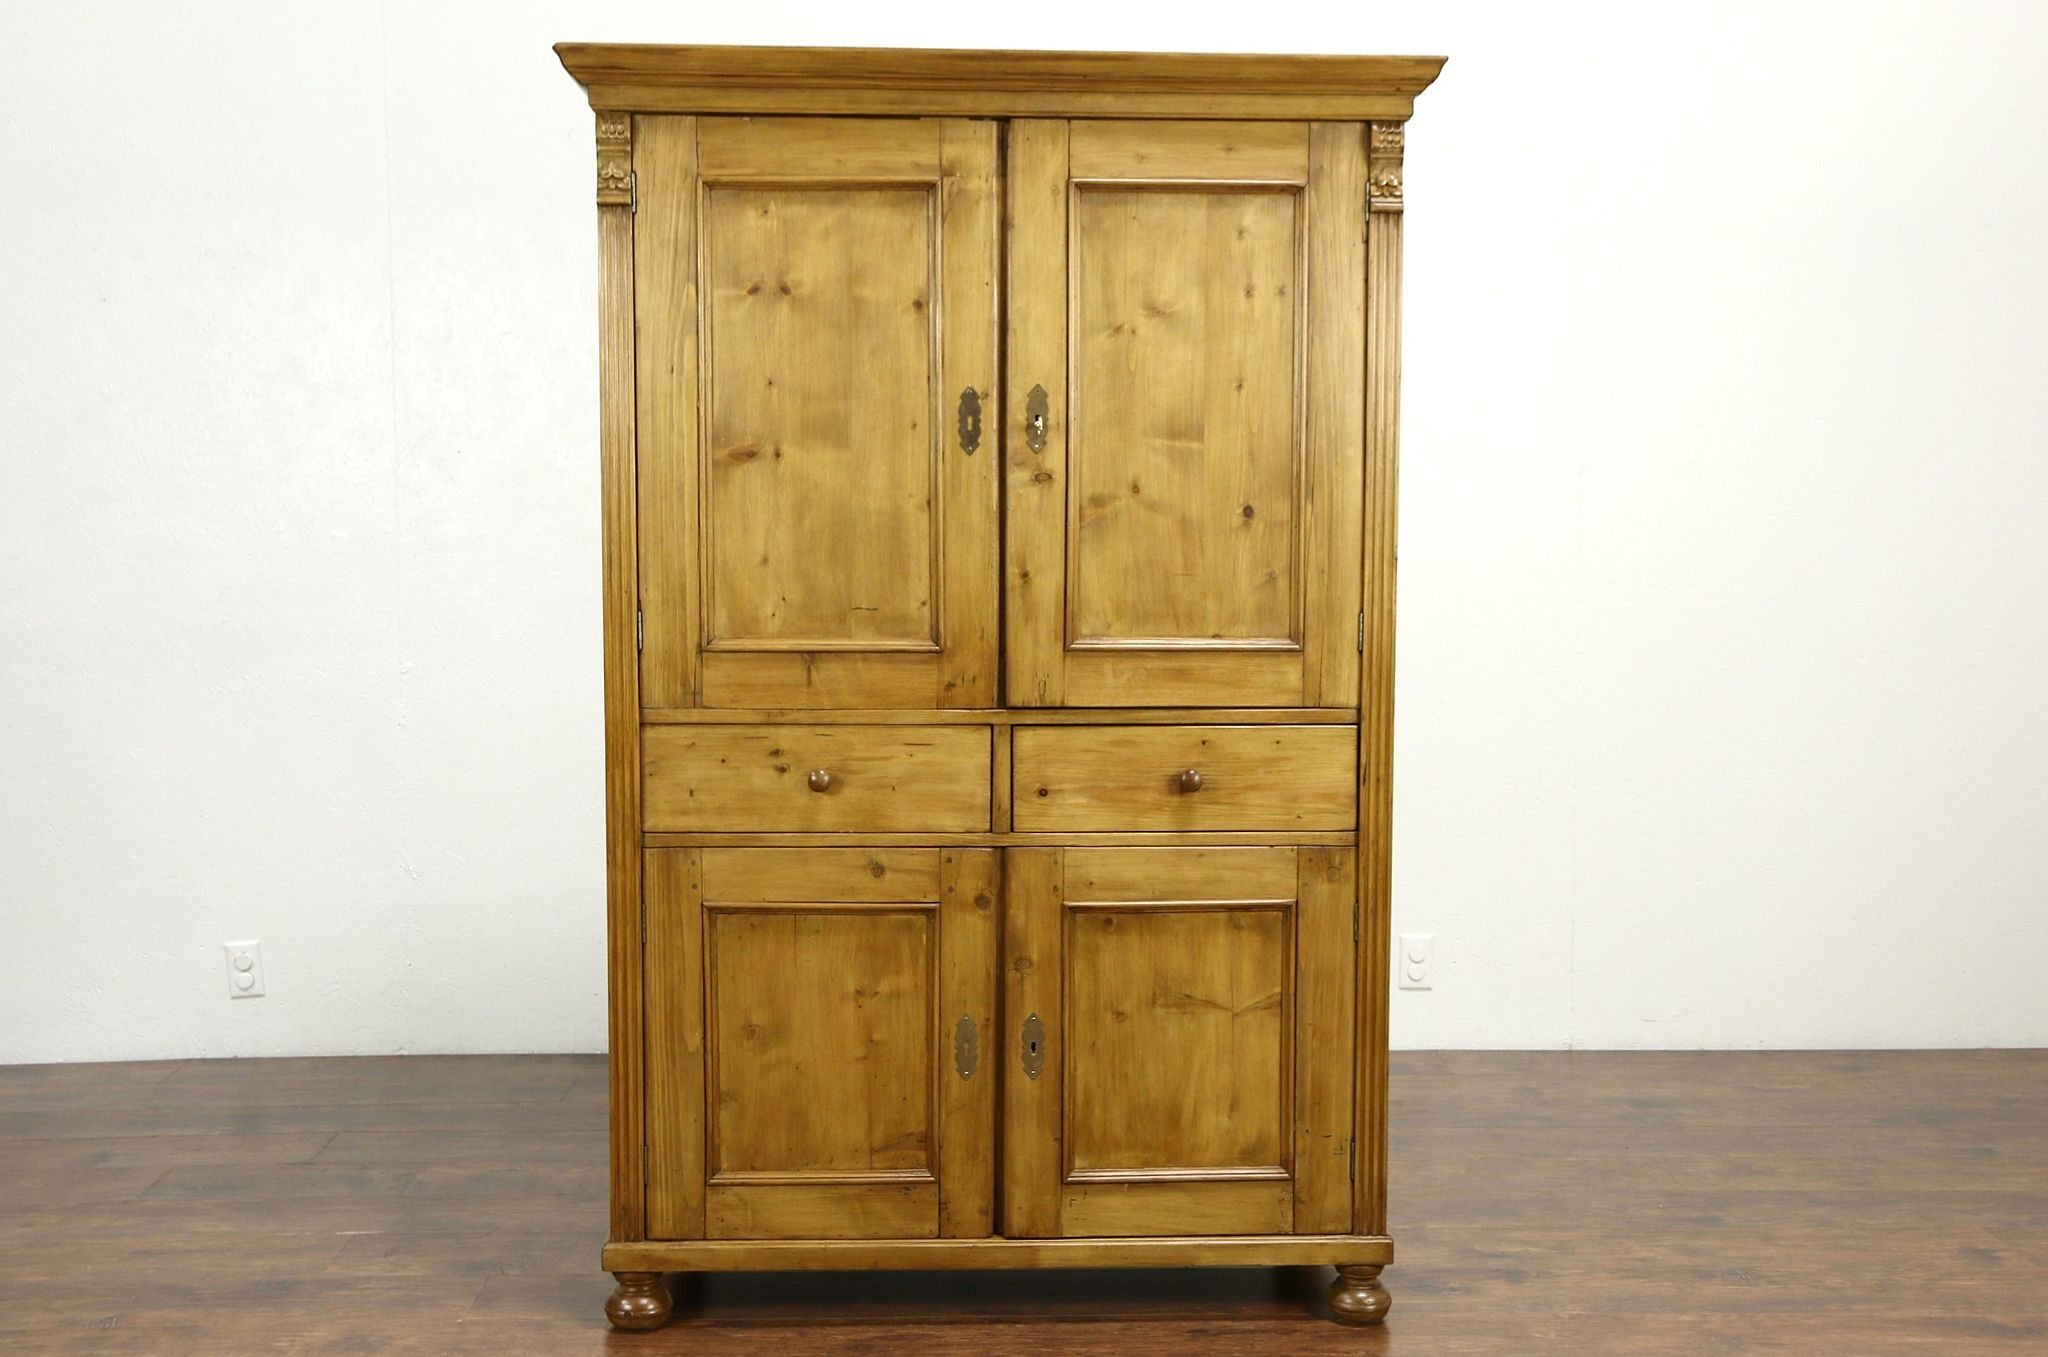 Sold Country Pine Antique Linen Cabinet Pantry Cupboard